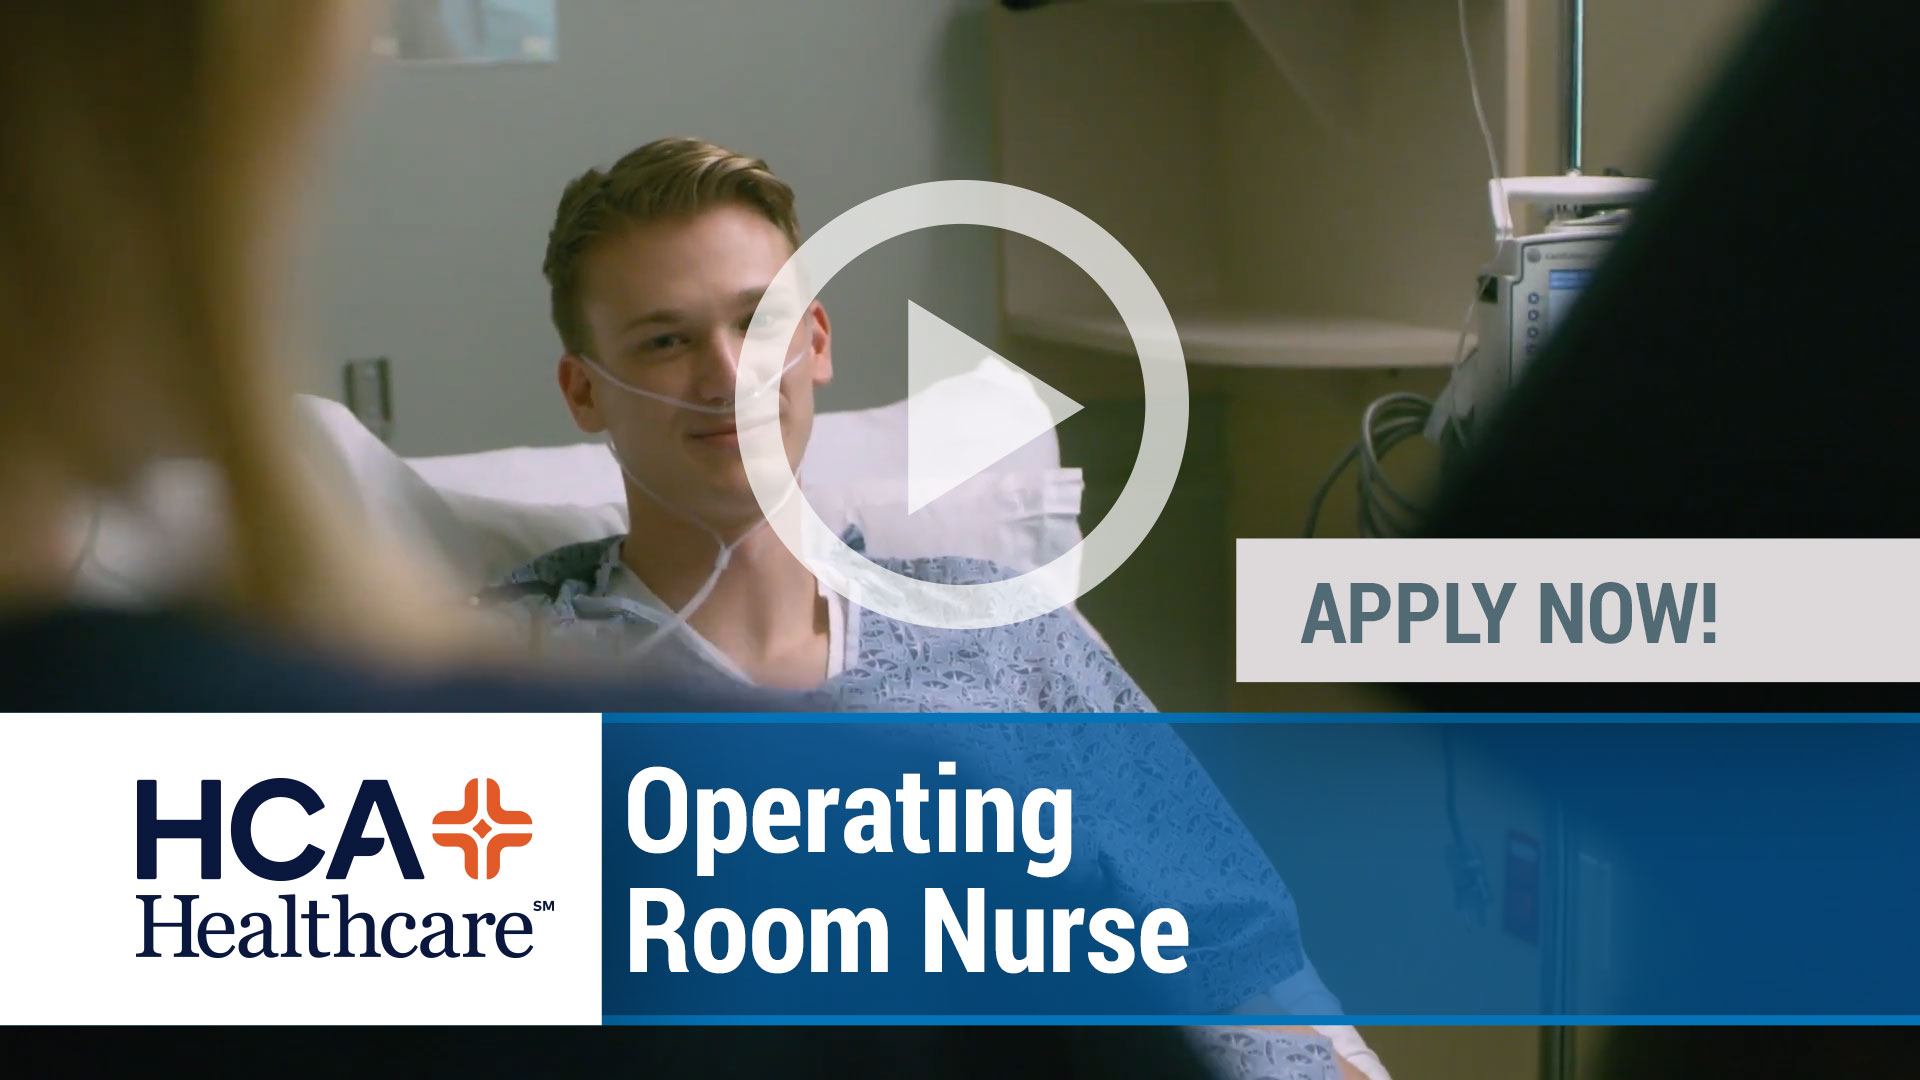 Watch our careers video for available job opening Operating Room Nurse in Dallas, Texas